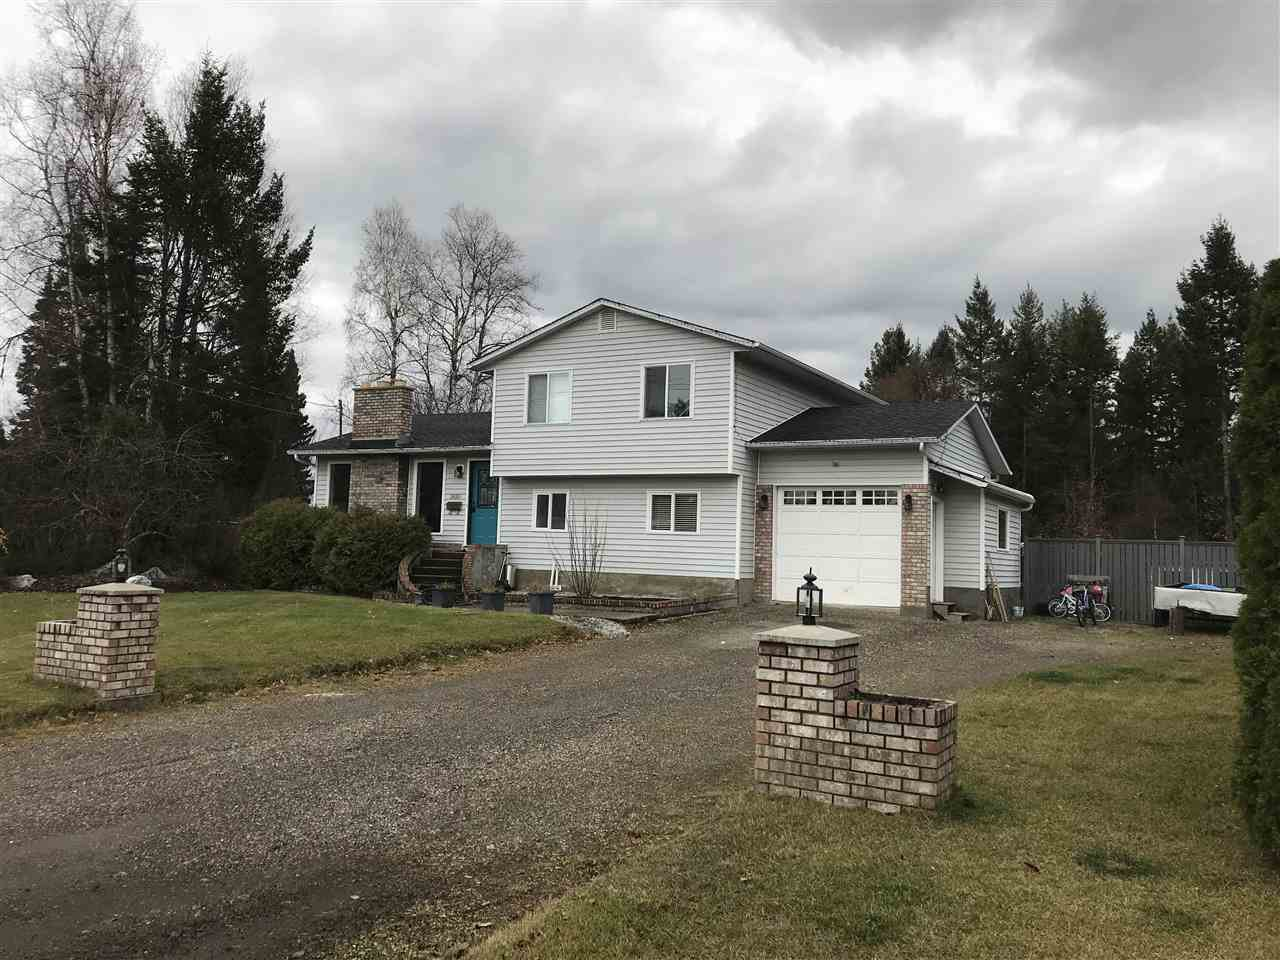 Main Photo: 2650 INGALA Place in Prince George: Ingala House for sale (PG City North (Zone 73))  : MLS®# R2220348